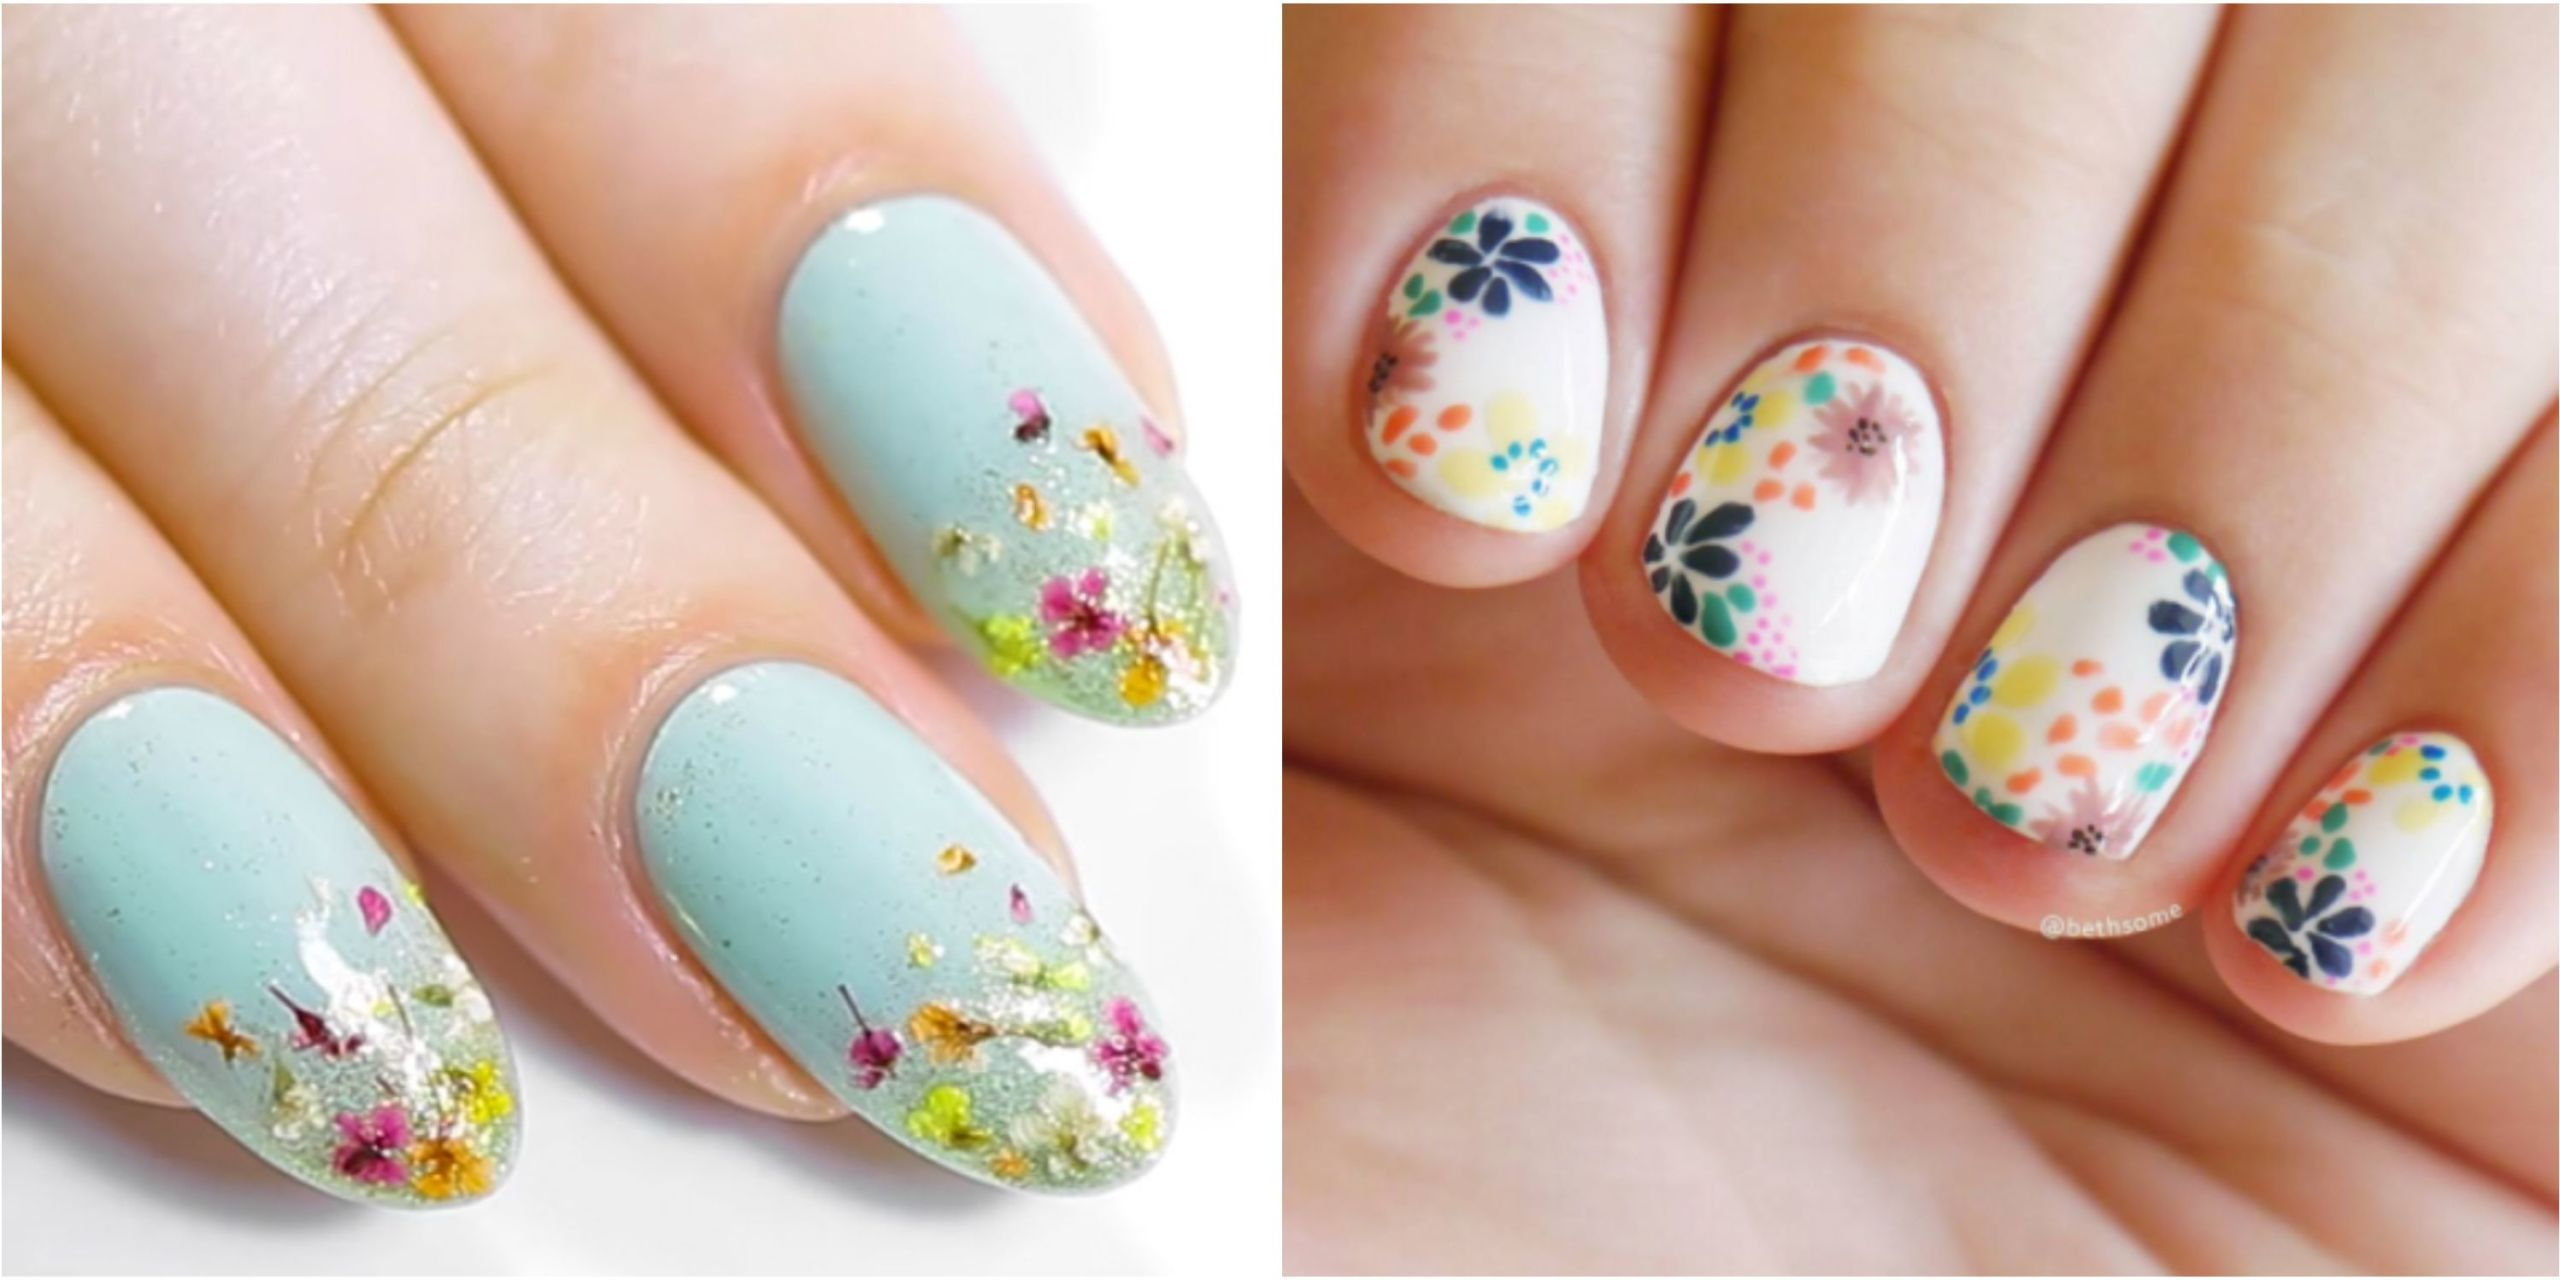 Because Everybody Loves Flowers, These Gorgeous Nail Art Designs Are  Perennial. Whether Done Freehand With A Brush Or With The Help Of Stamps,  ...